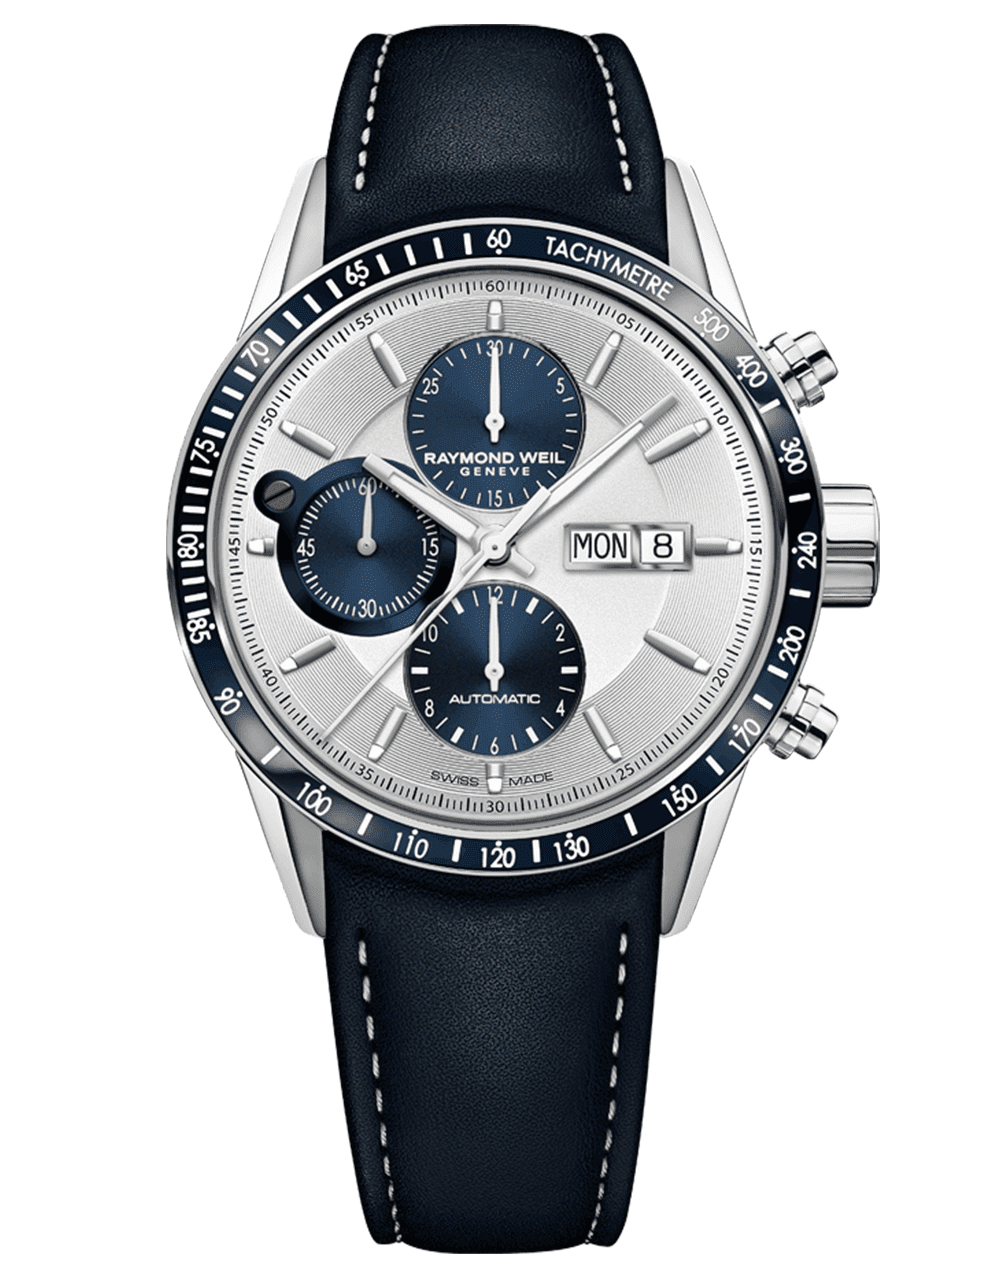 RAYMOND WEIL Men's Freelancer Chronograph Luxury Swiss Watch